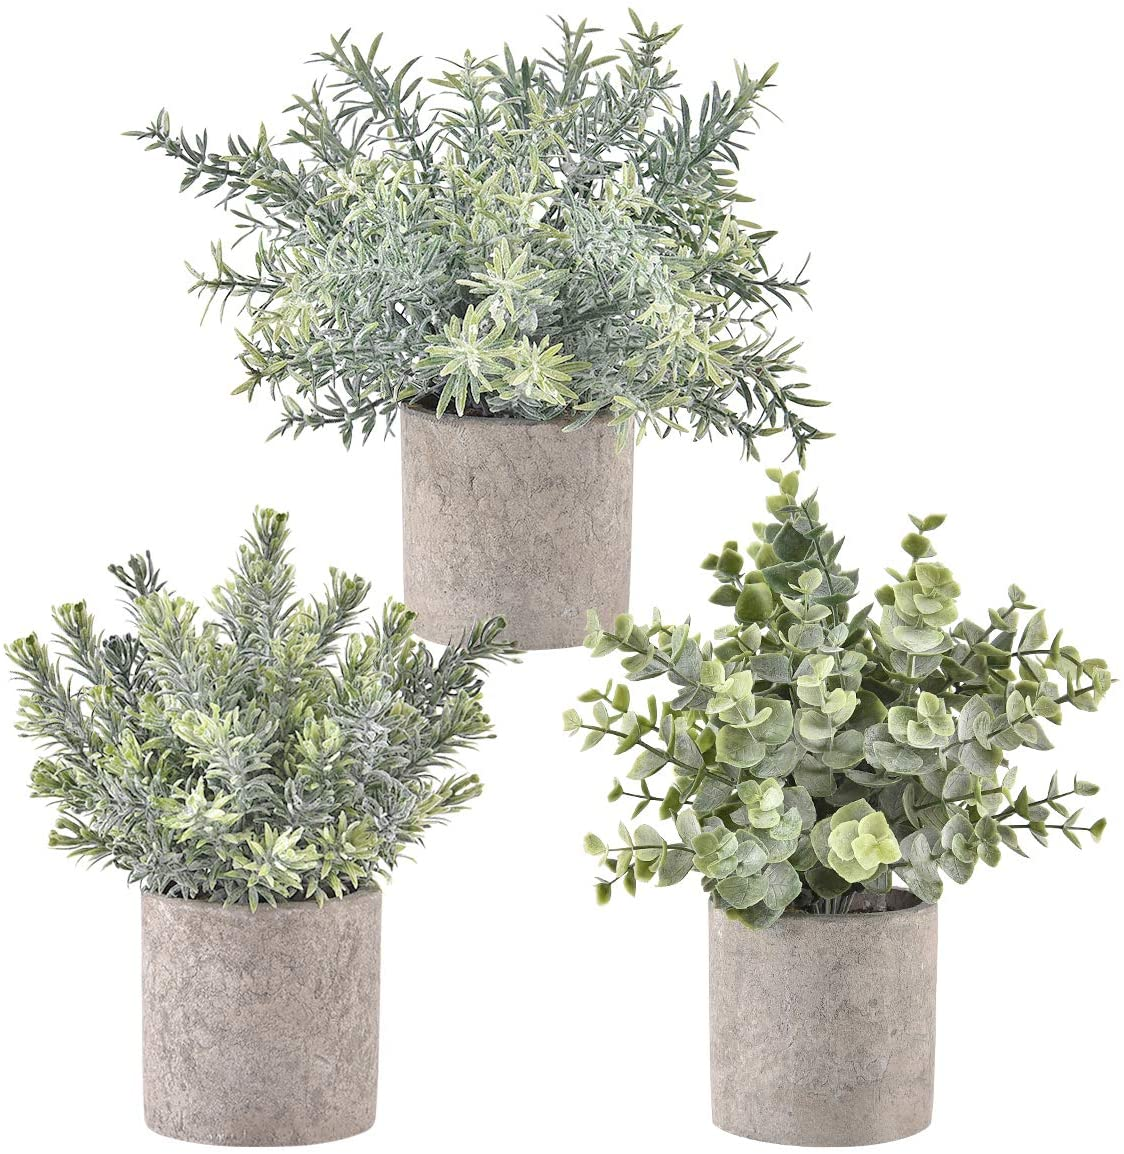 Shiny Flower Set of 3 Artificial Potted Plants Fake Potted Eucalyptus Rosemary Plastic Decoration for Table Centerpiece Office Kitchen Shower Room